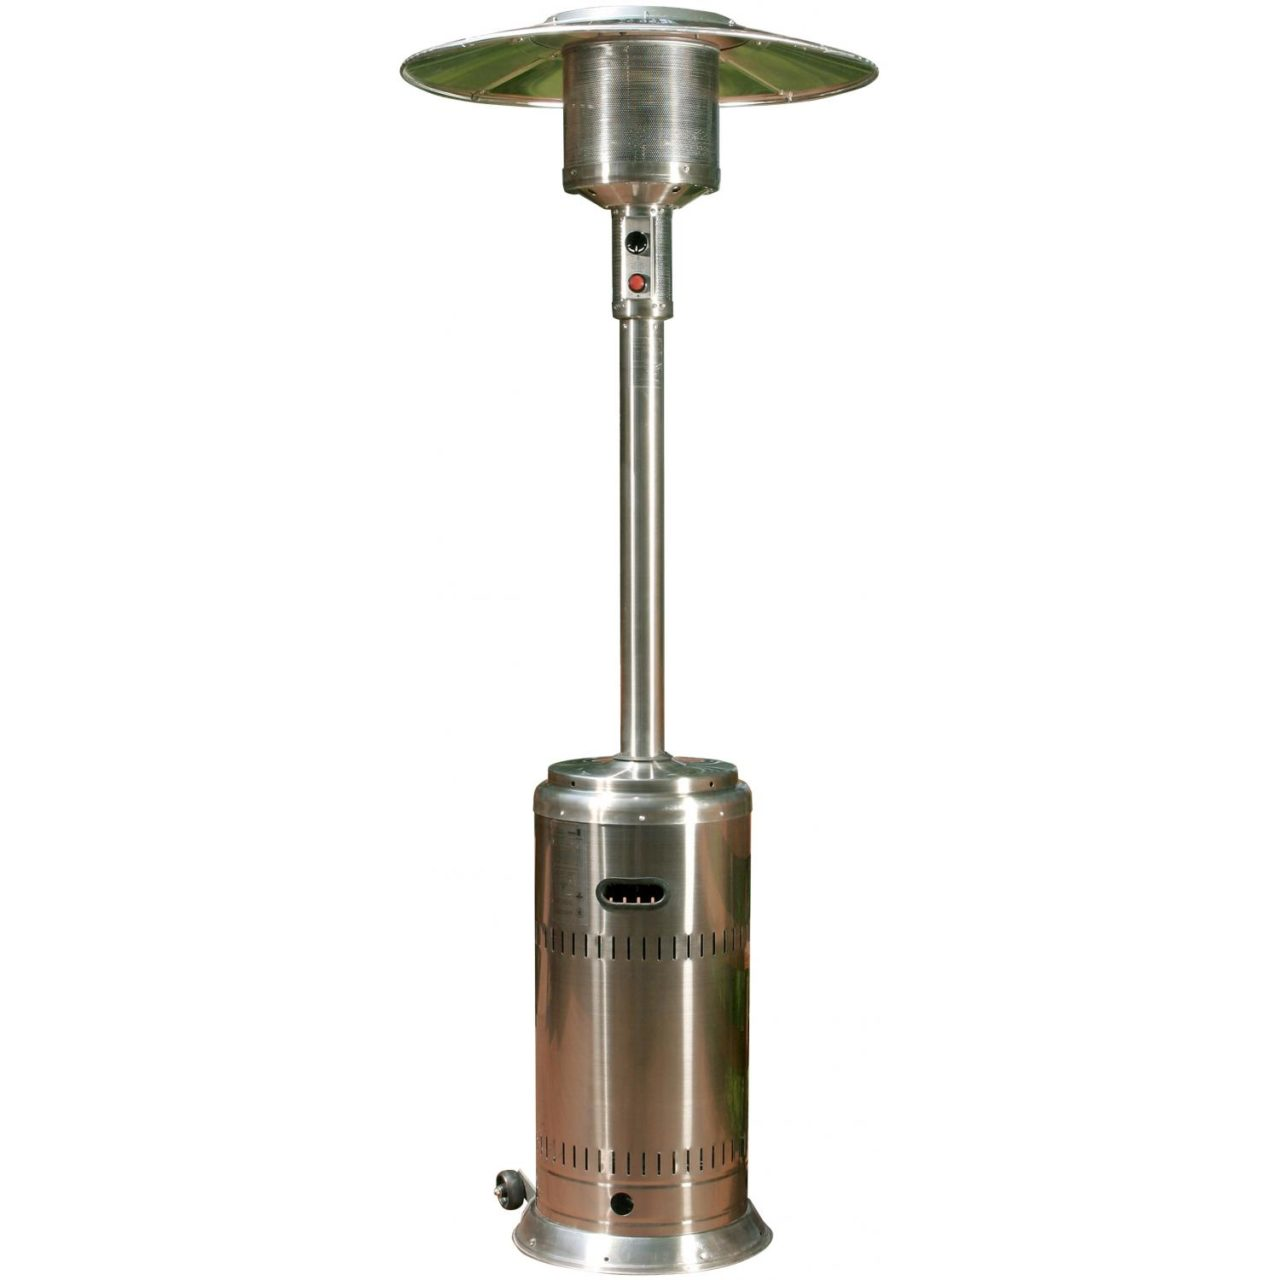 Stainless Outdoor Patio Heater Rental  Premiere Events